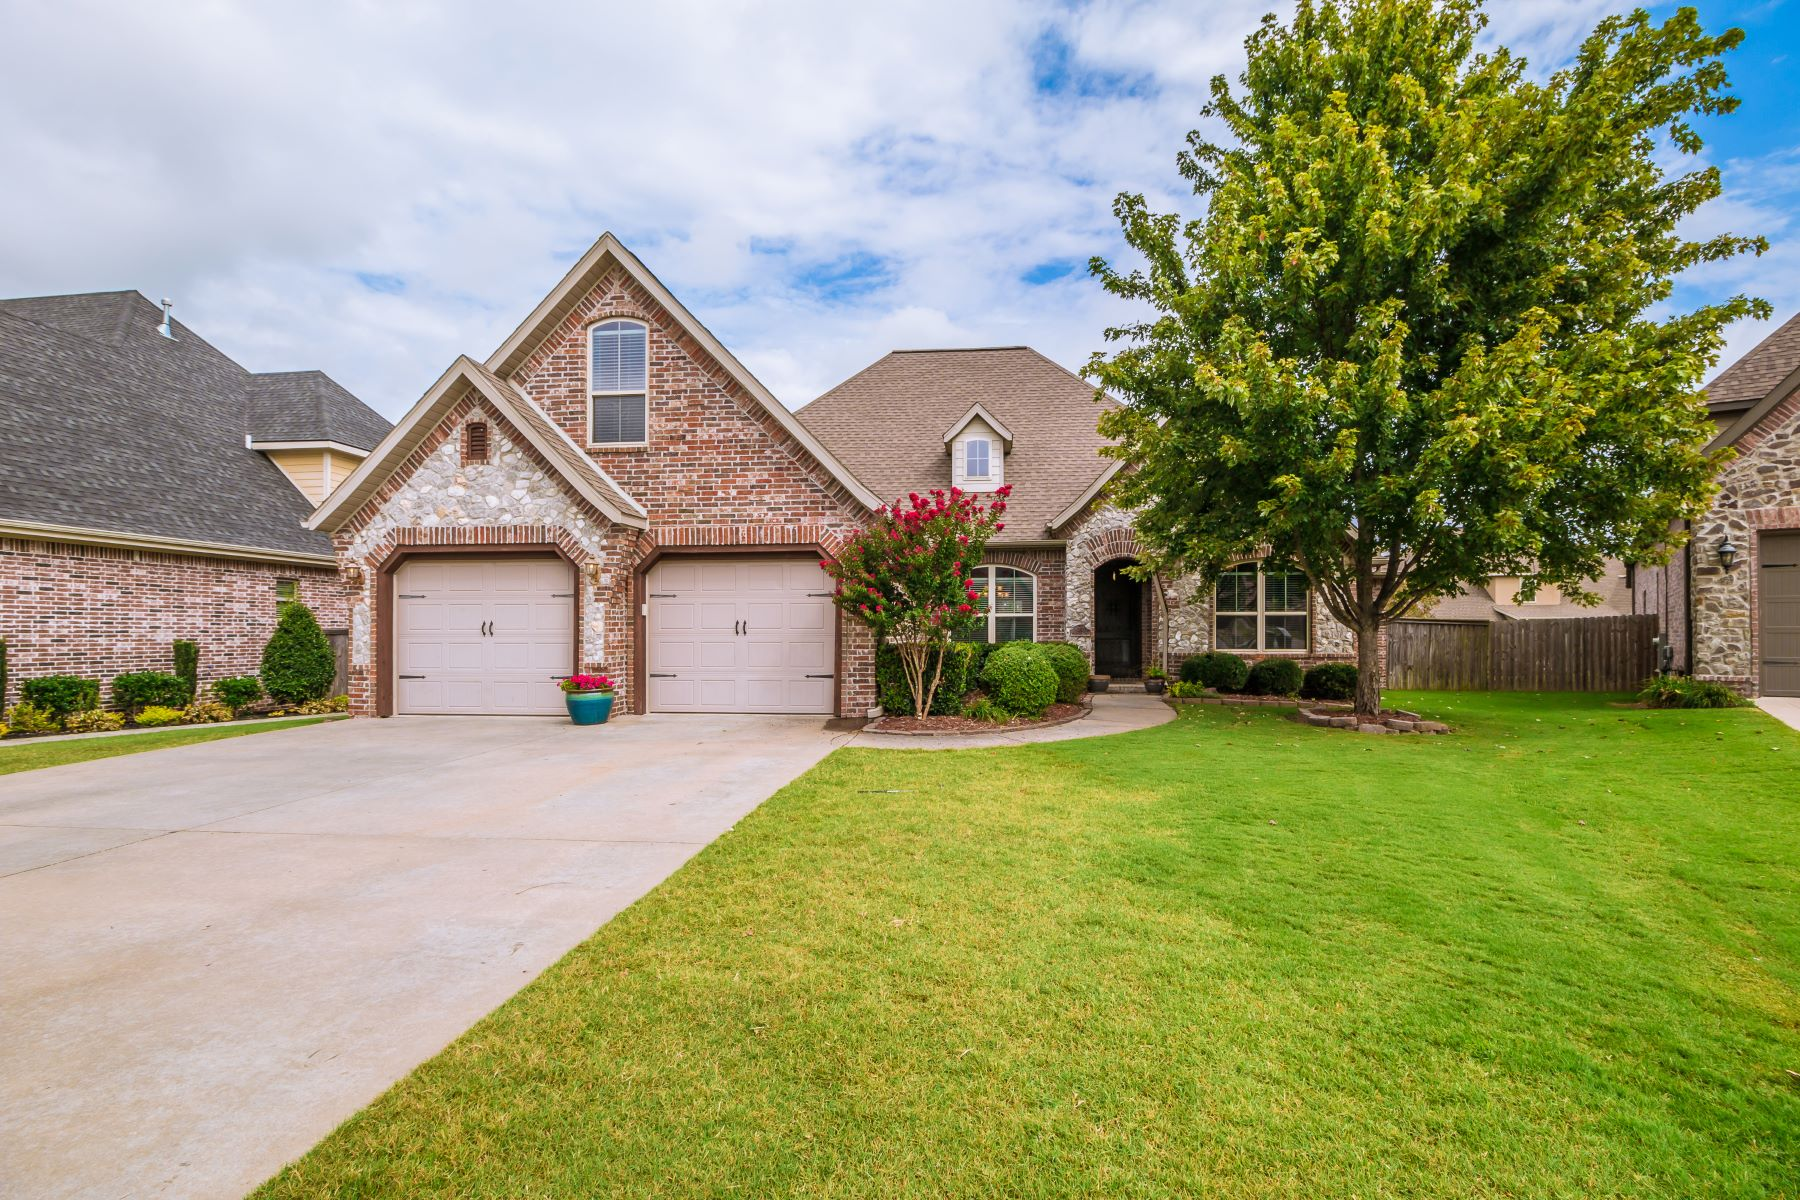 Single Family Homes for Sale at 4203 W. Willowbend Drive Rogers, Arkansas 72758 United States